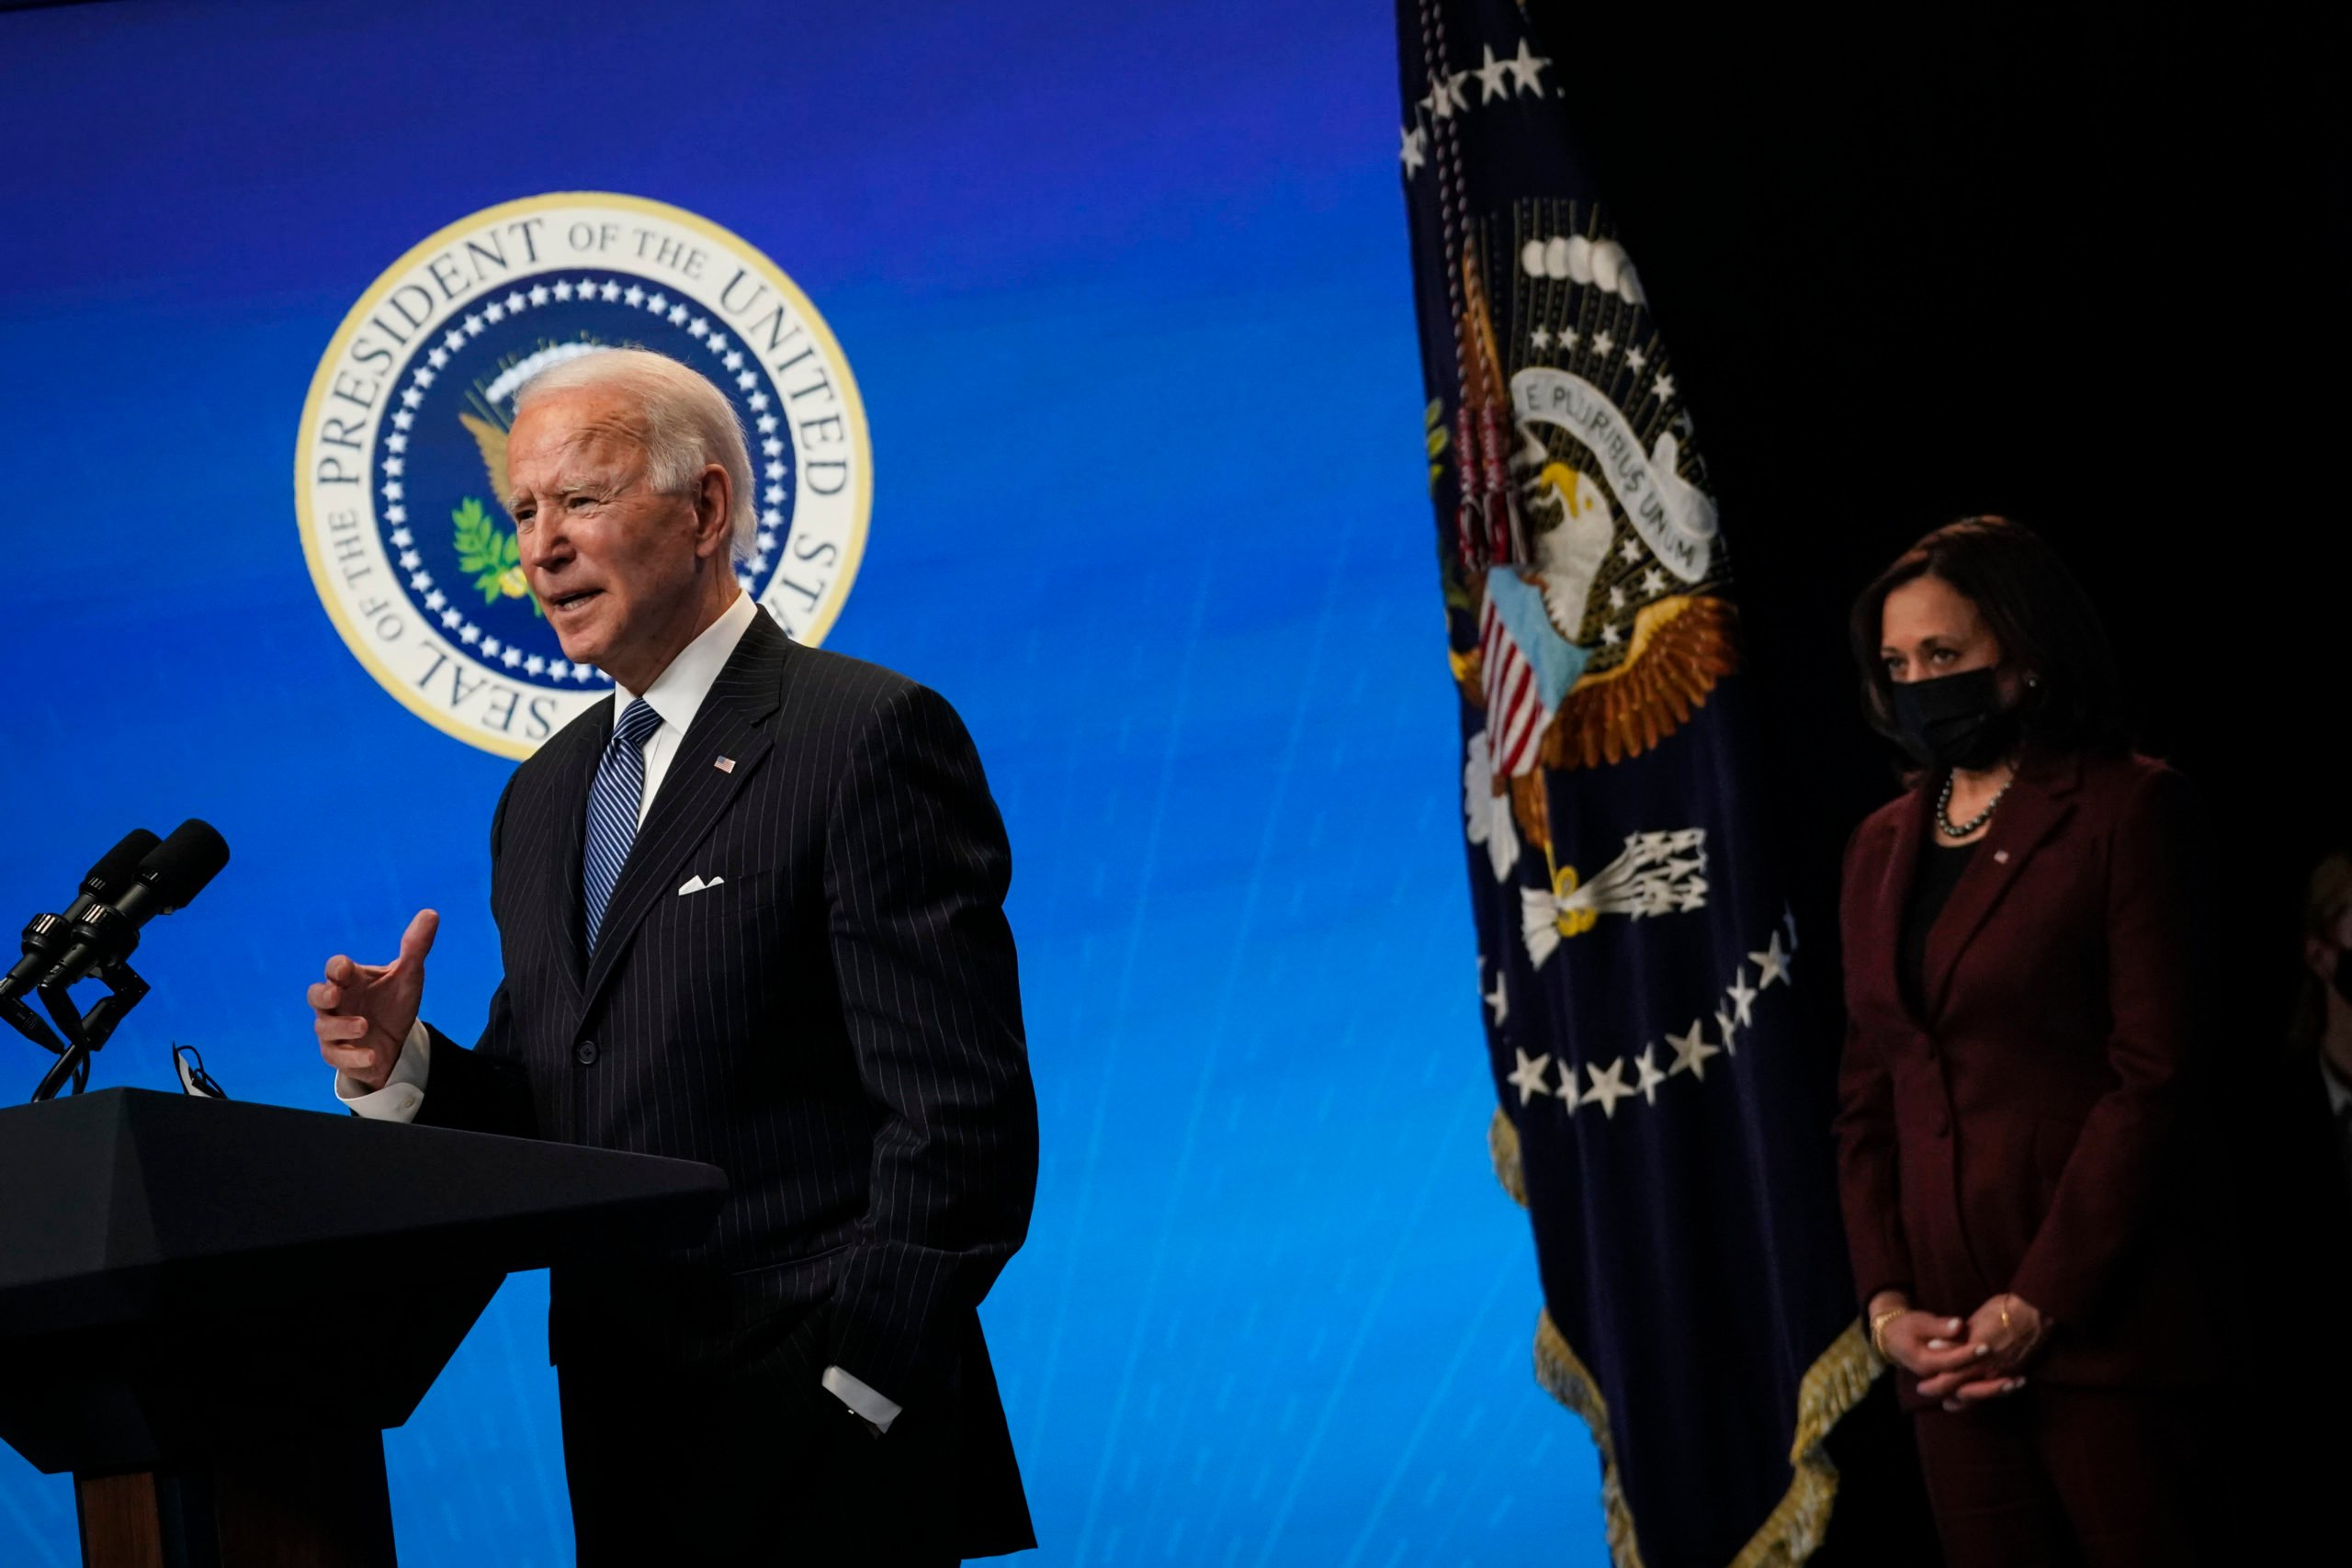 WASHINGTON, DC - JANUARY 25: U.S. Vice President Kamala Harris (R) looks on as U.S. President Joe Biden speaks after signing an executive order related to American manufacturing in the South Court Auditorium of the White House complex on January 25, 2021 in Washington, DC. President Biden signed an executive order aimed at boosting American manufacturing and strengthening the federal government's Buy American rules. (Photo by Drew Angerer/Getty Images)